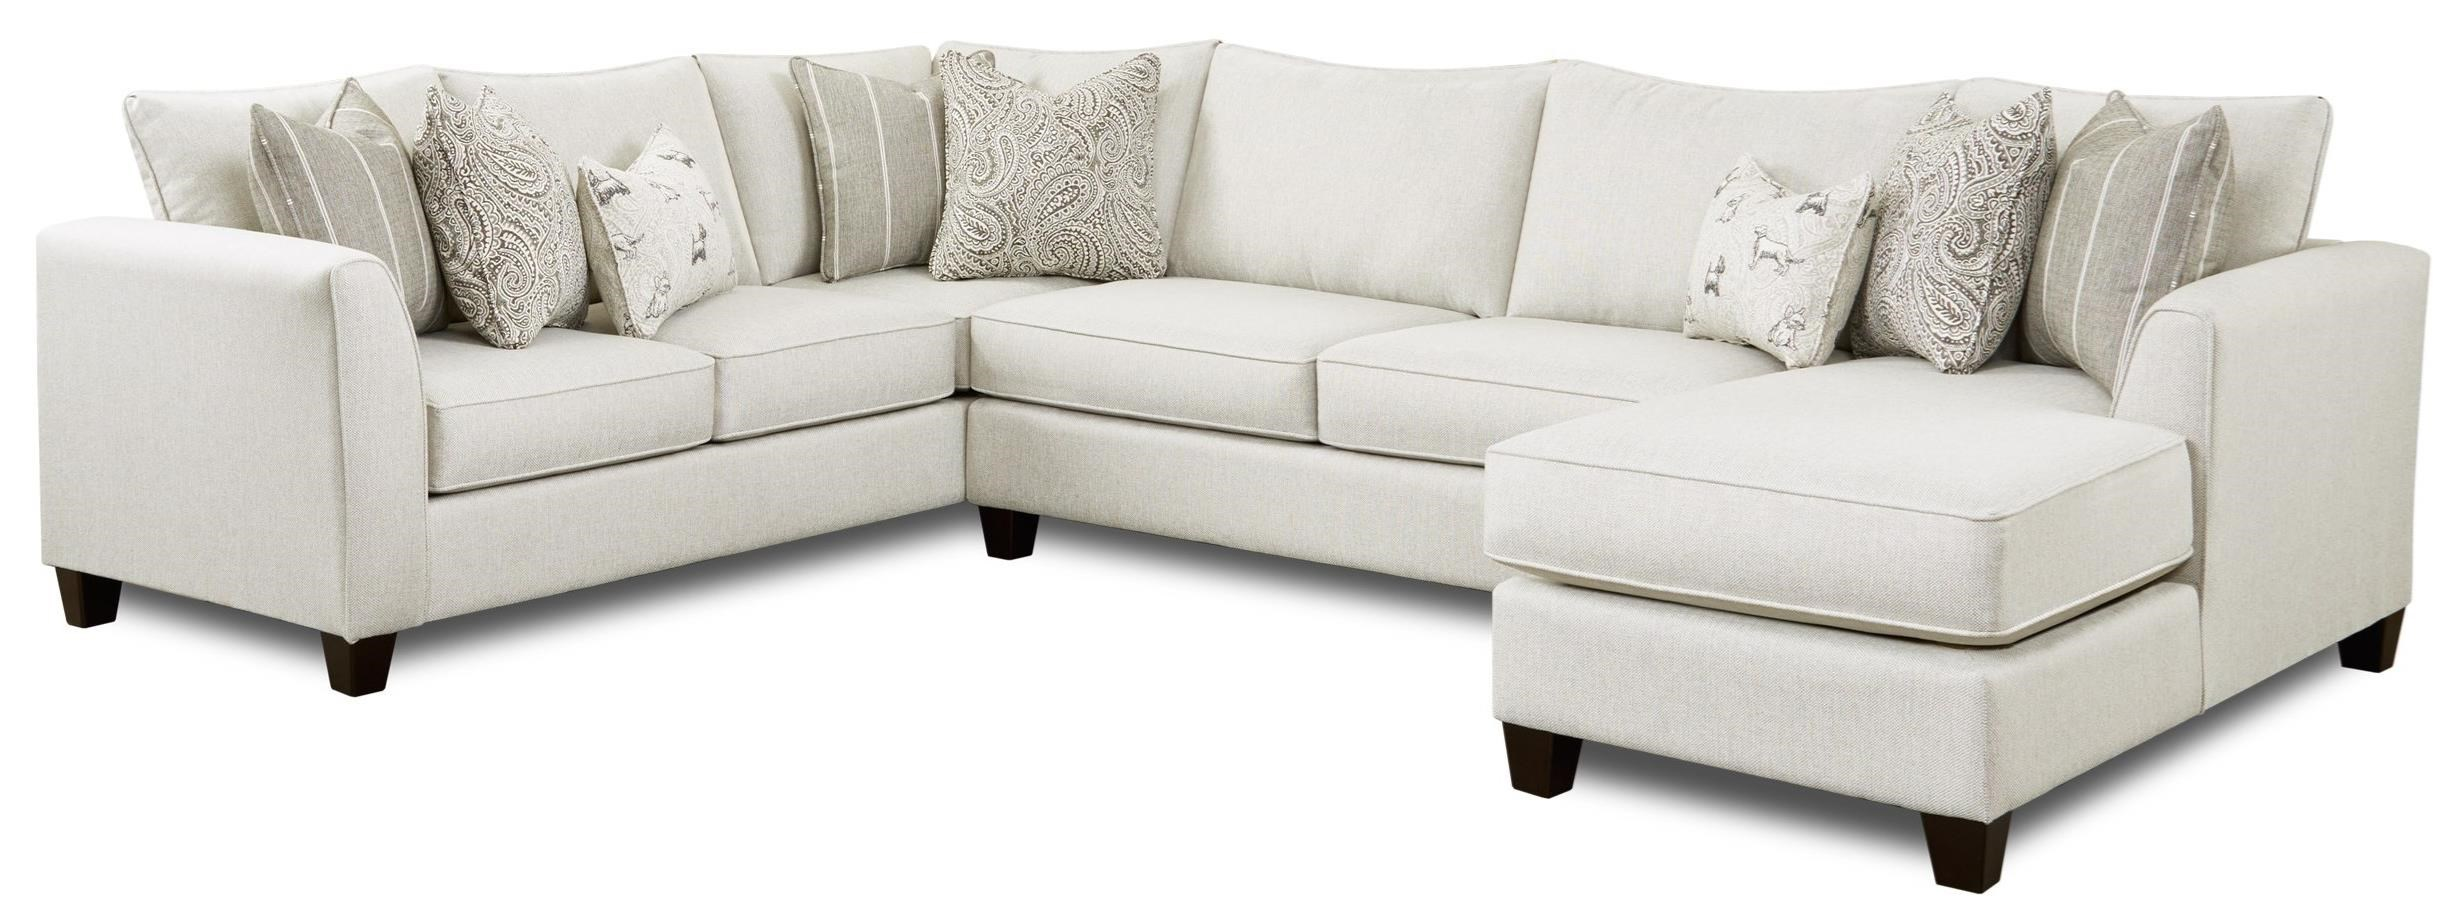 28 3-Piece Sectional with Chaise by Fusion Furniture at Story & Lee Furniture